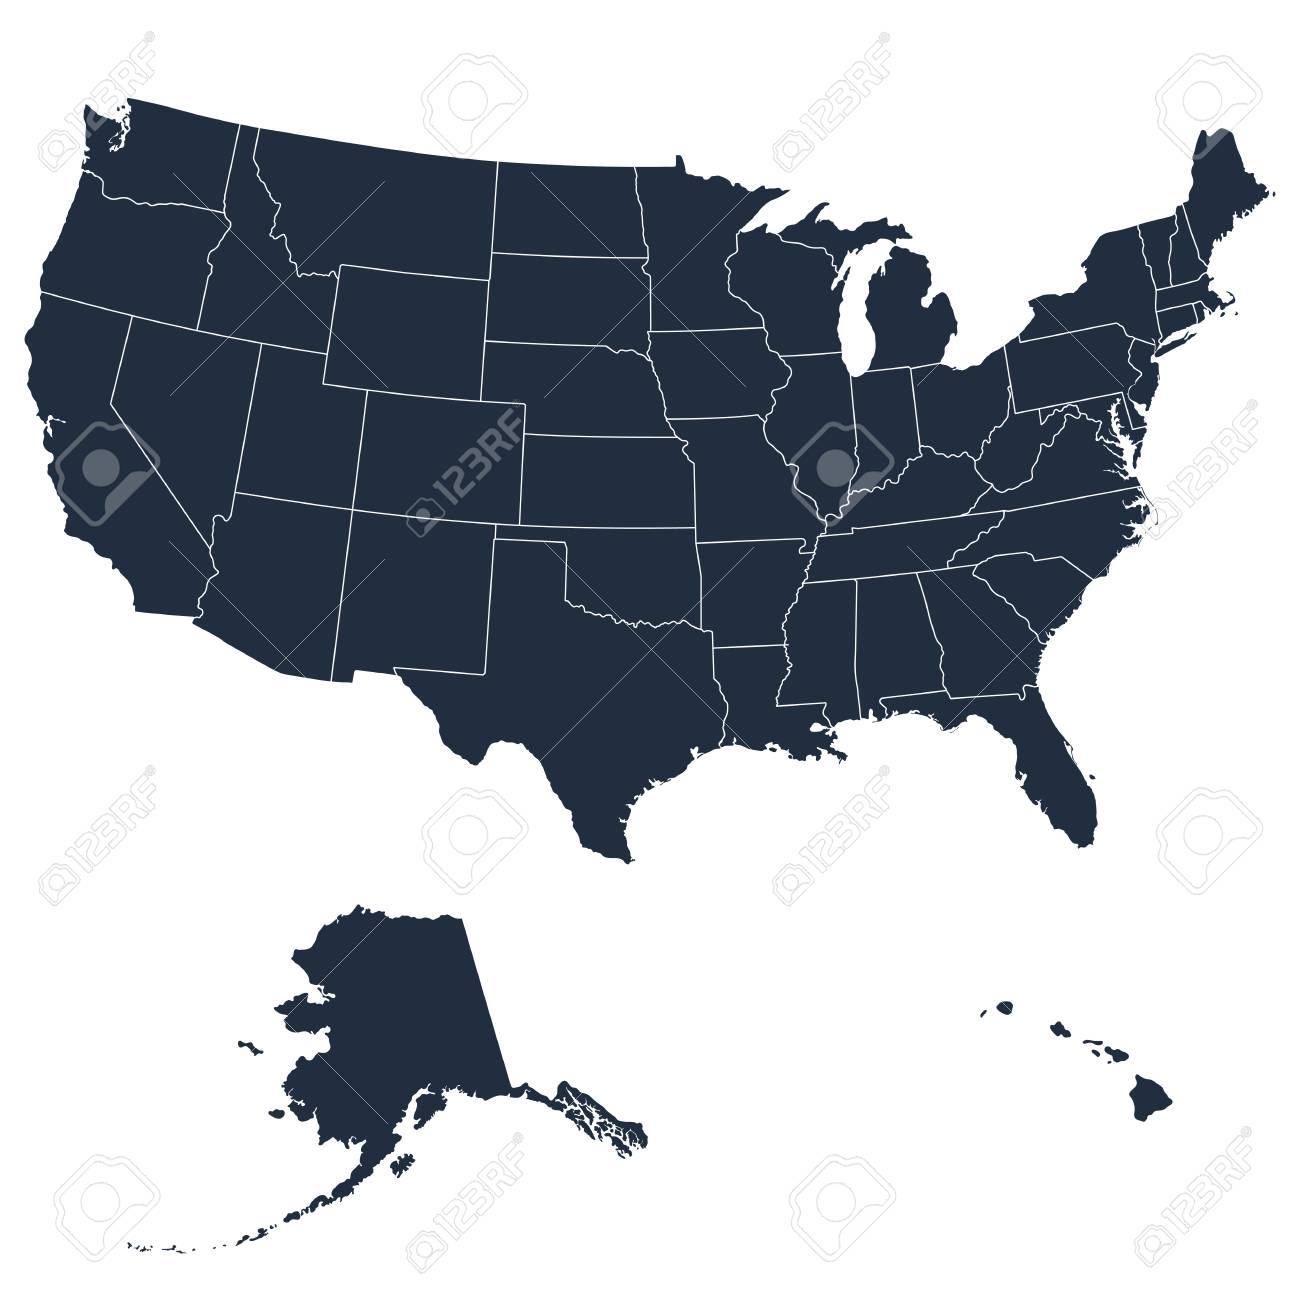 The detailed map of the USA including Alaska and Hawaii. The..